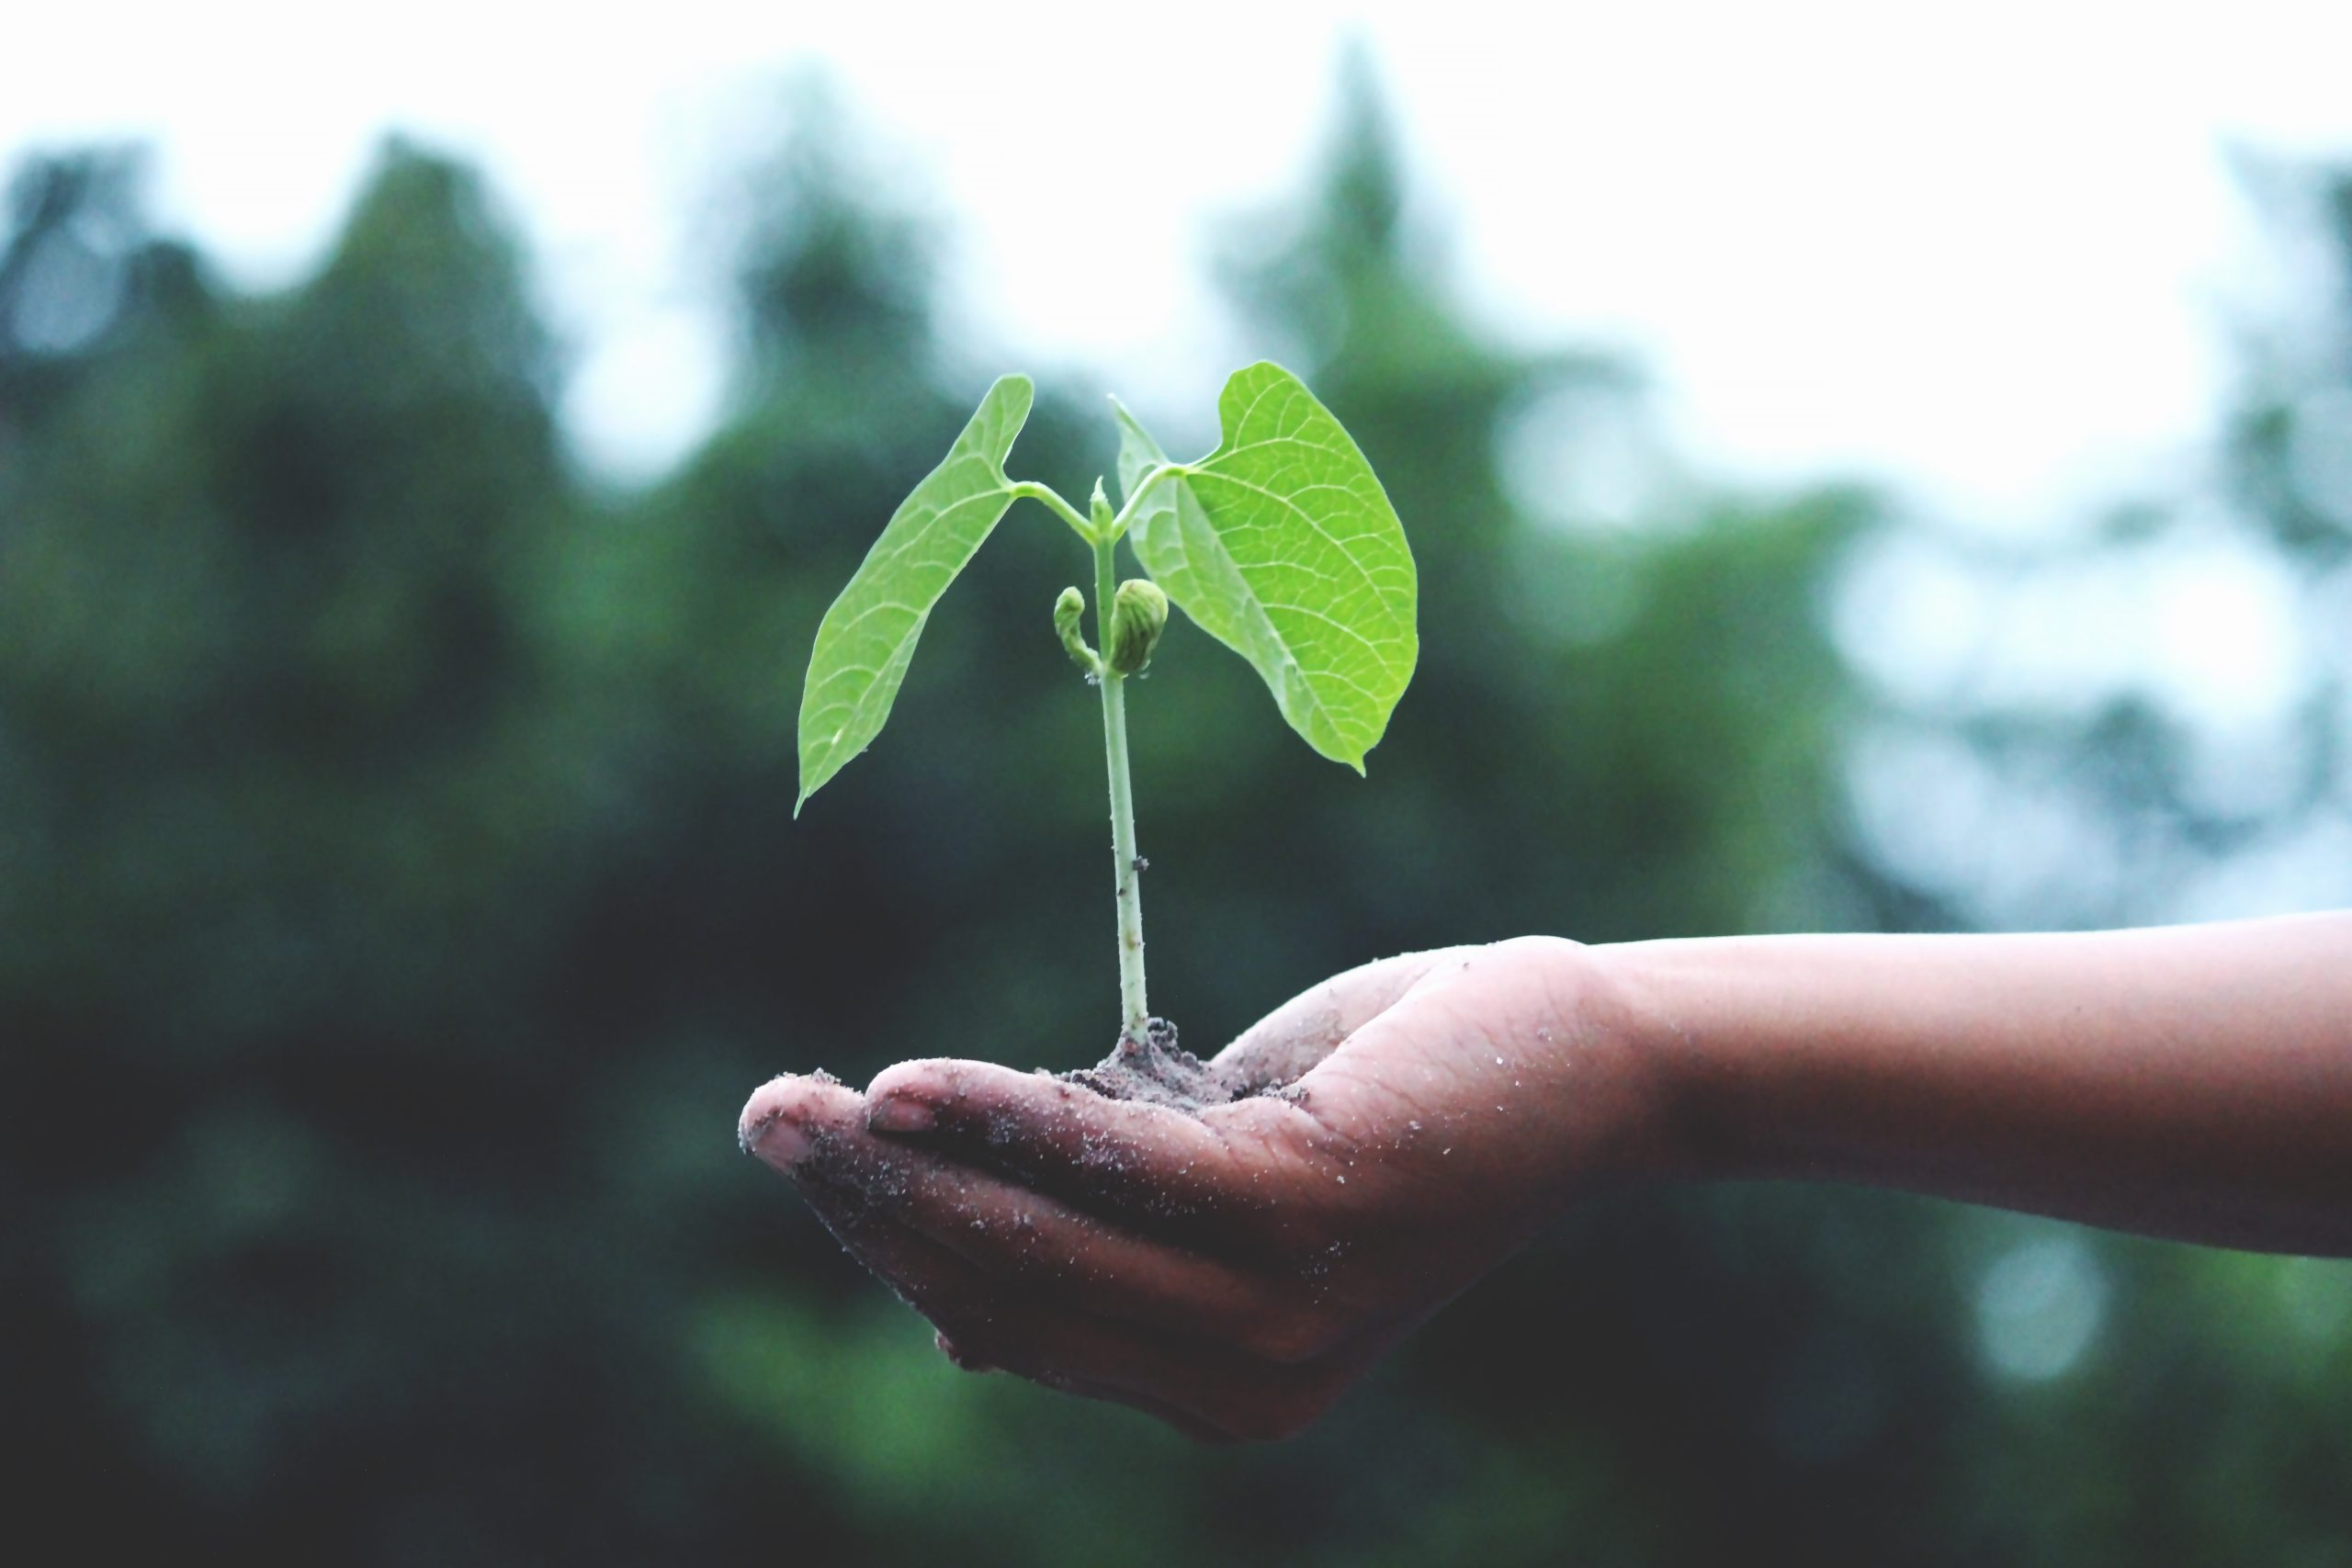 A hand holding a small, growing green plant